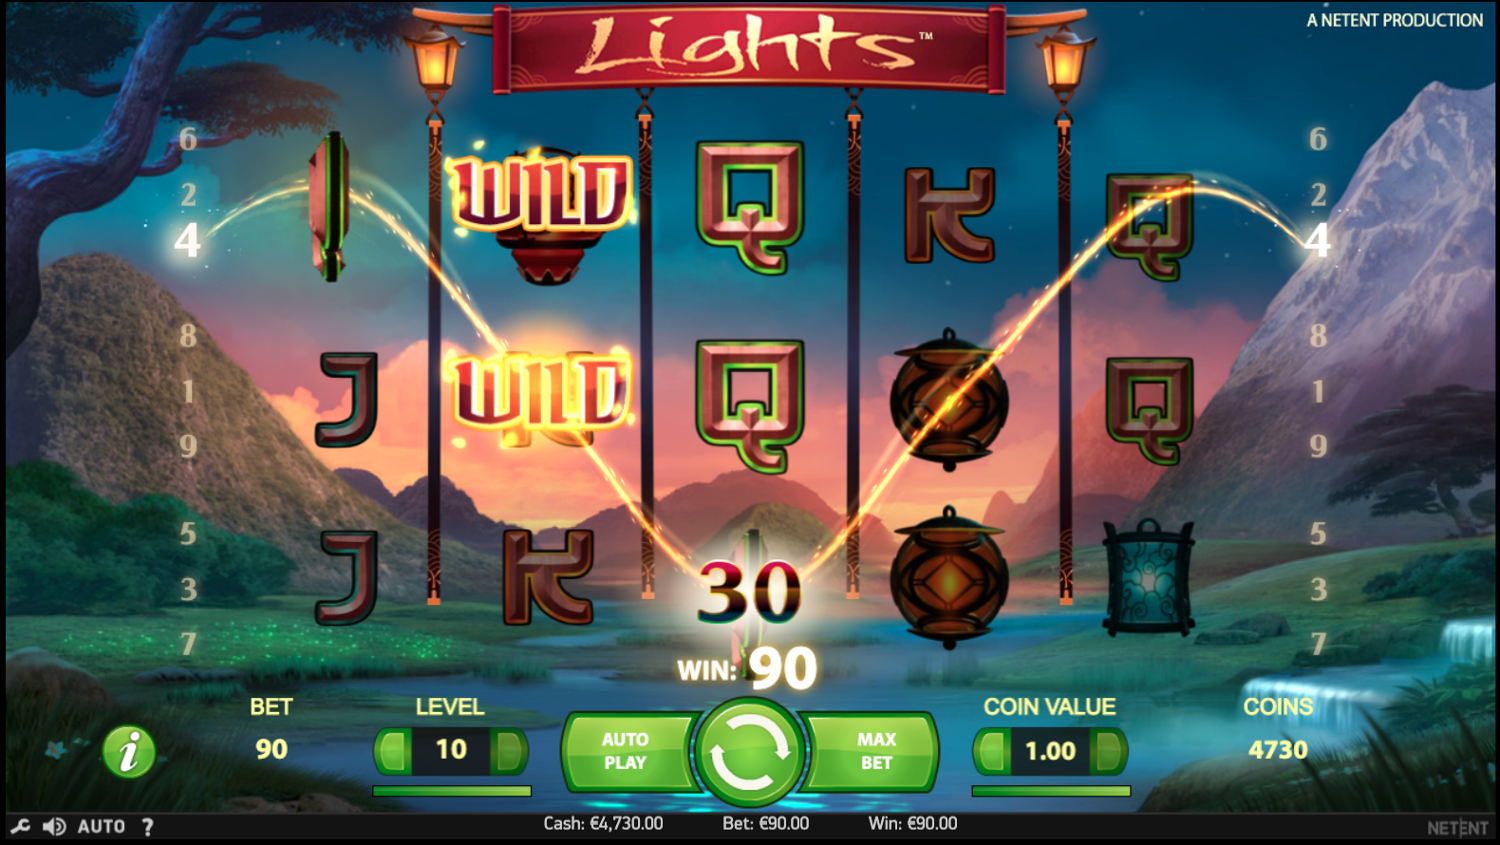 Lights slot win